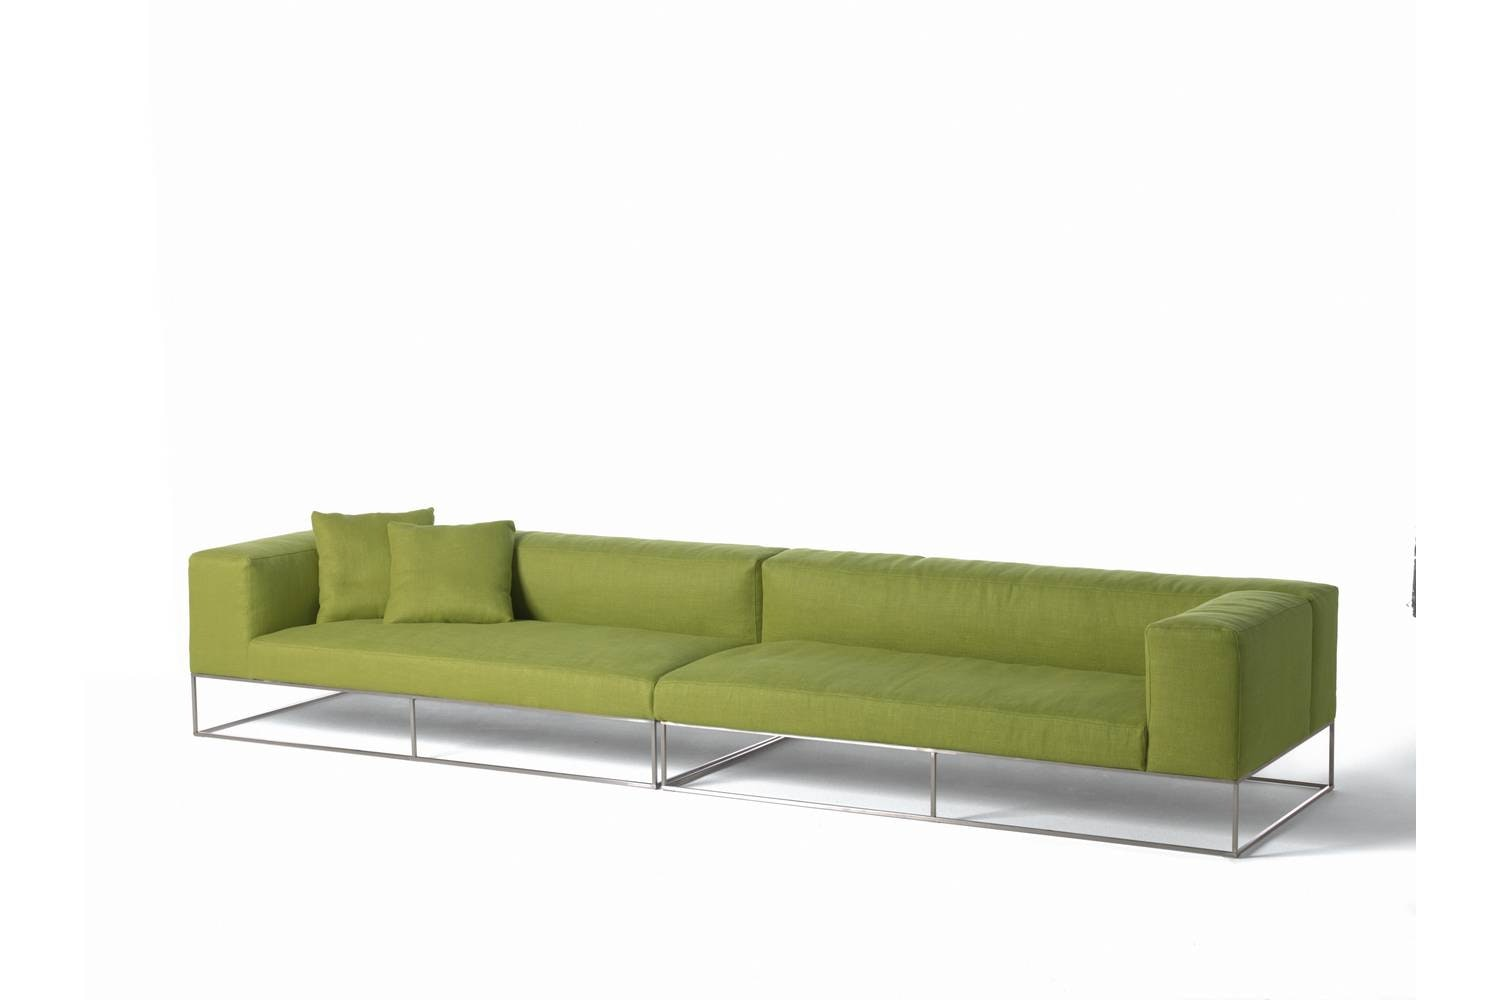 Ile Club Sofa by Piero Lissoni for Living Divani